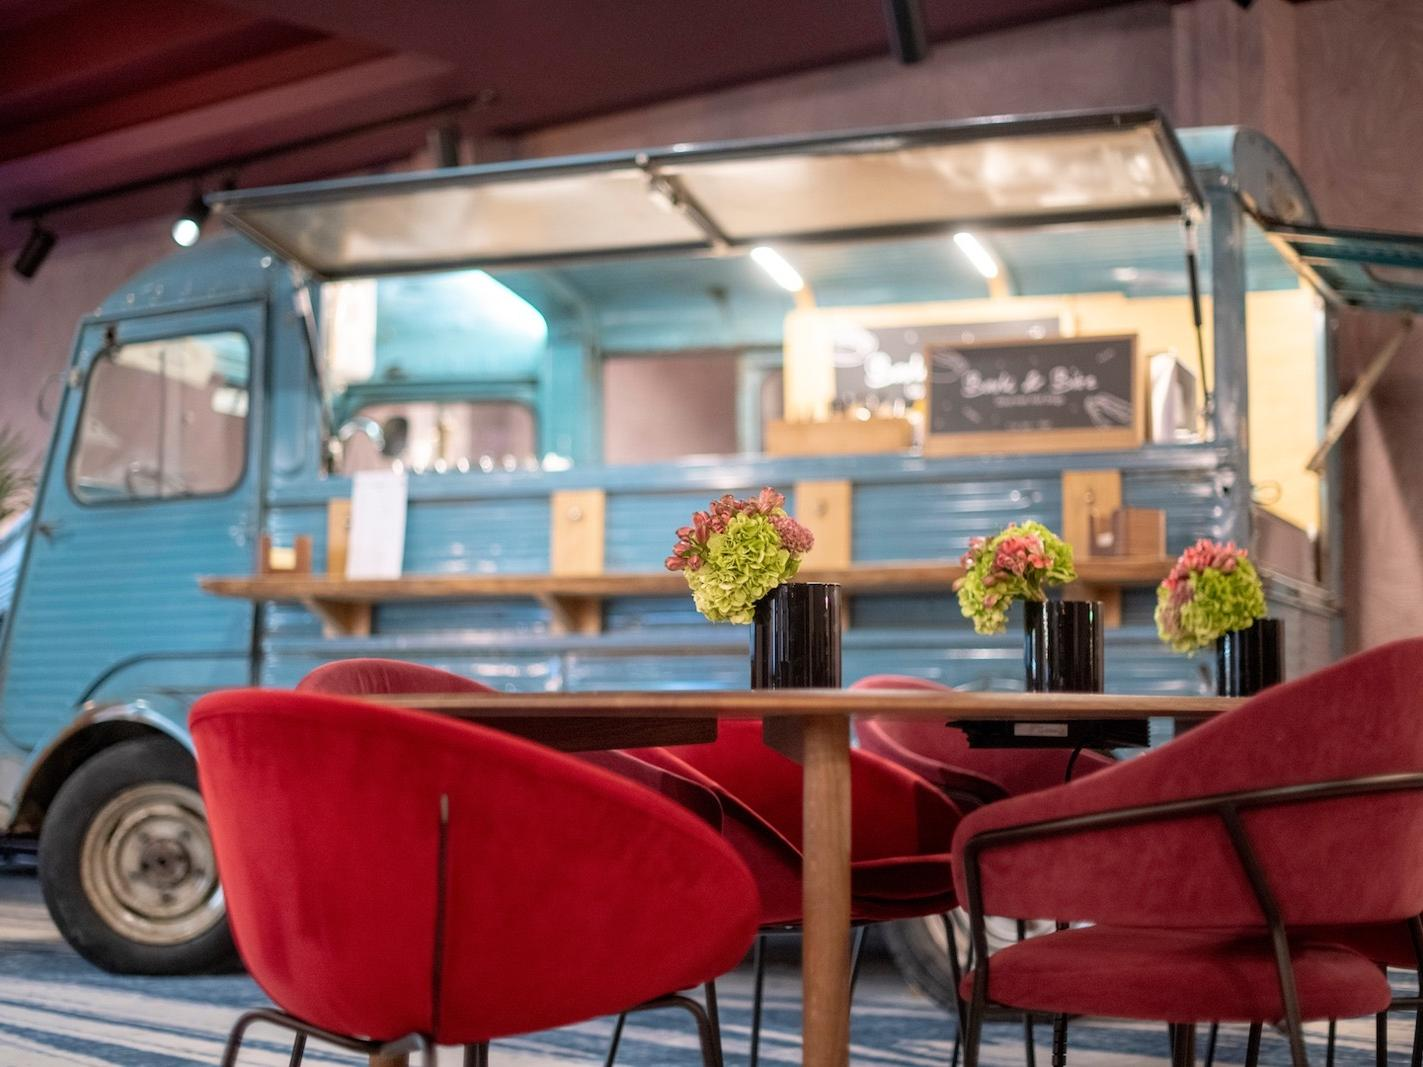 Food truck at Hotel Hubert Brussels near Grand Place